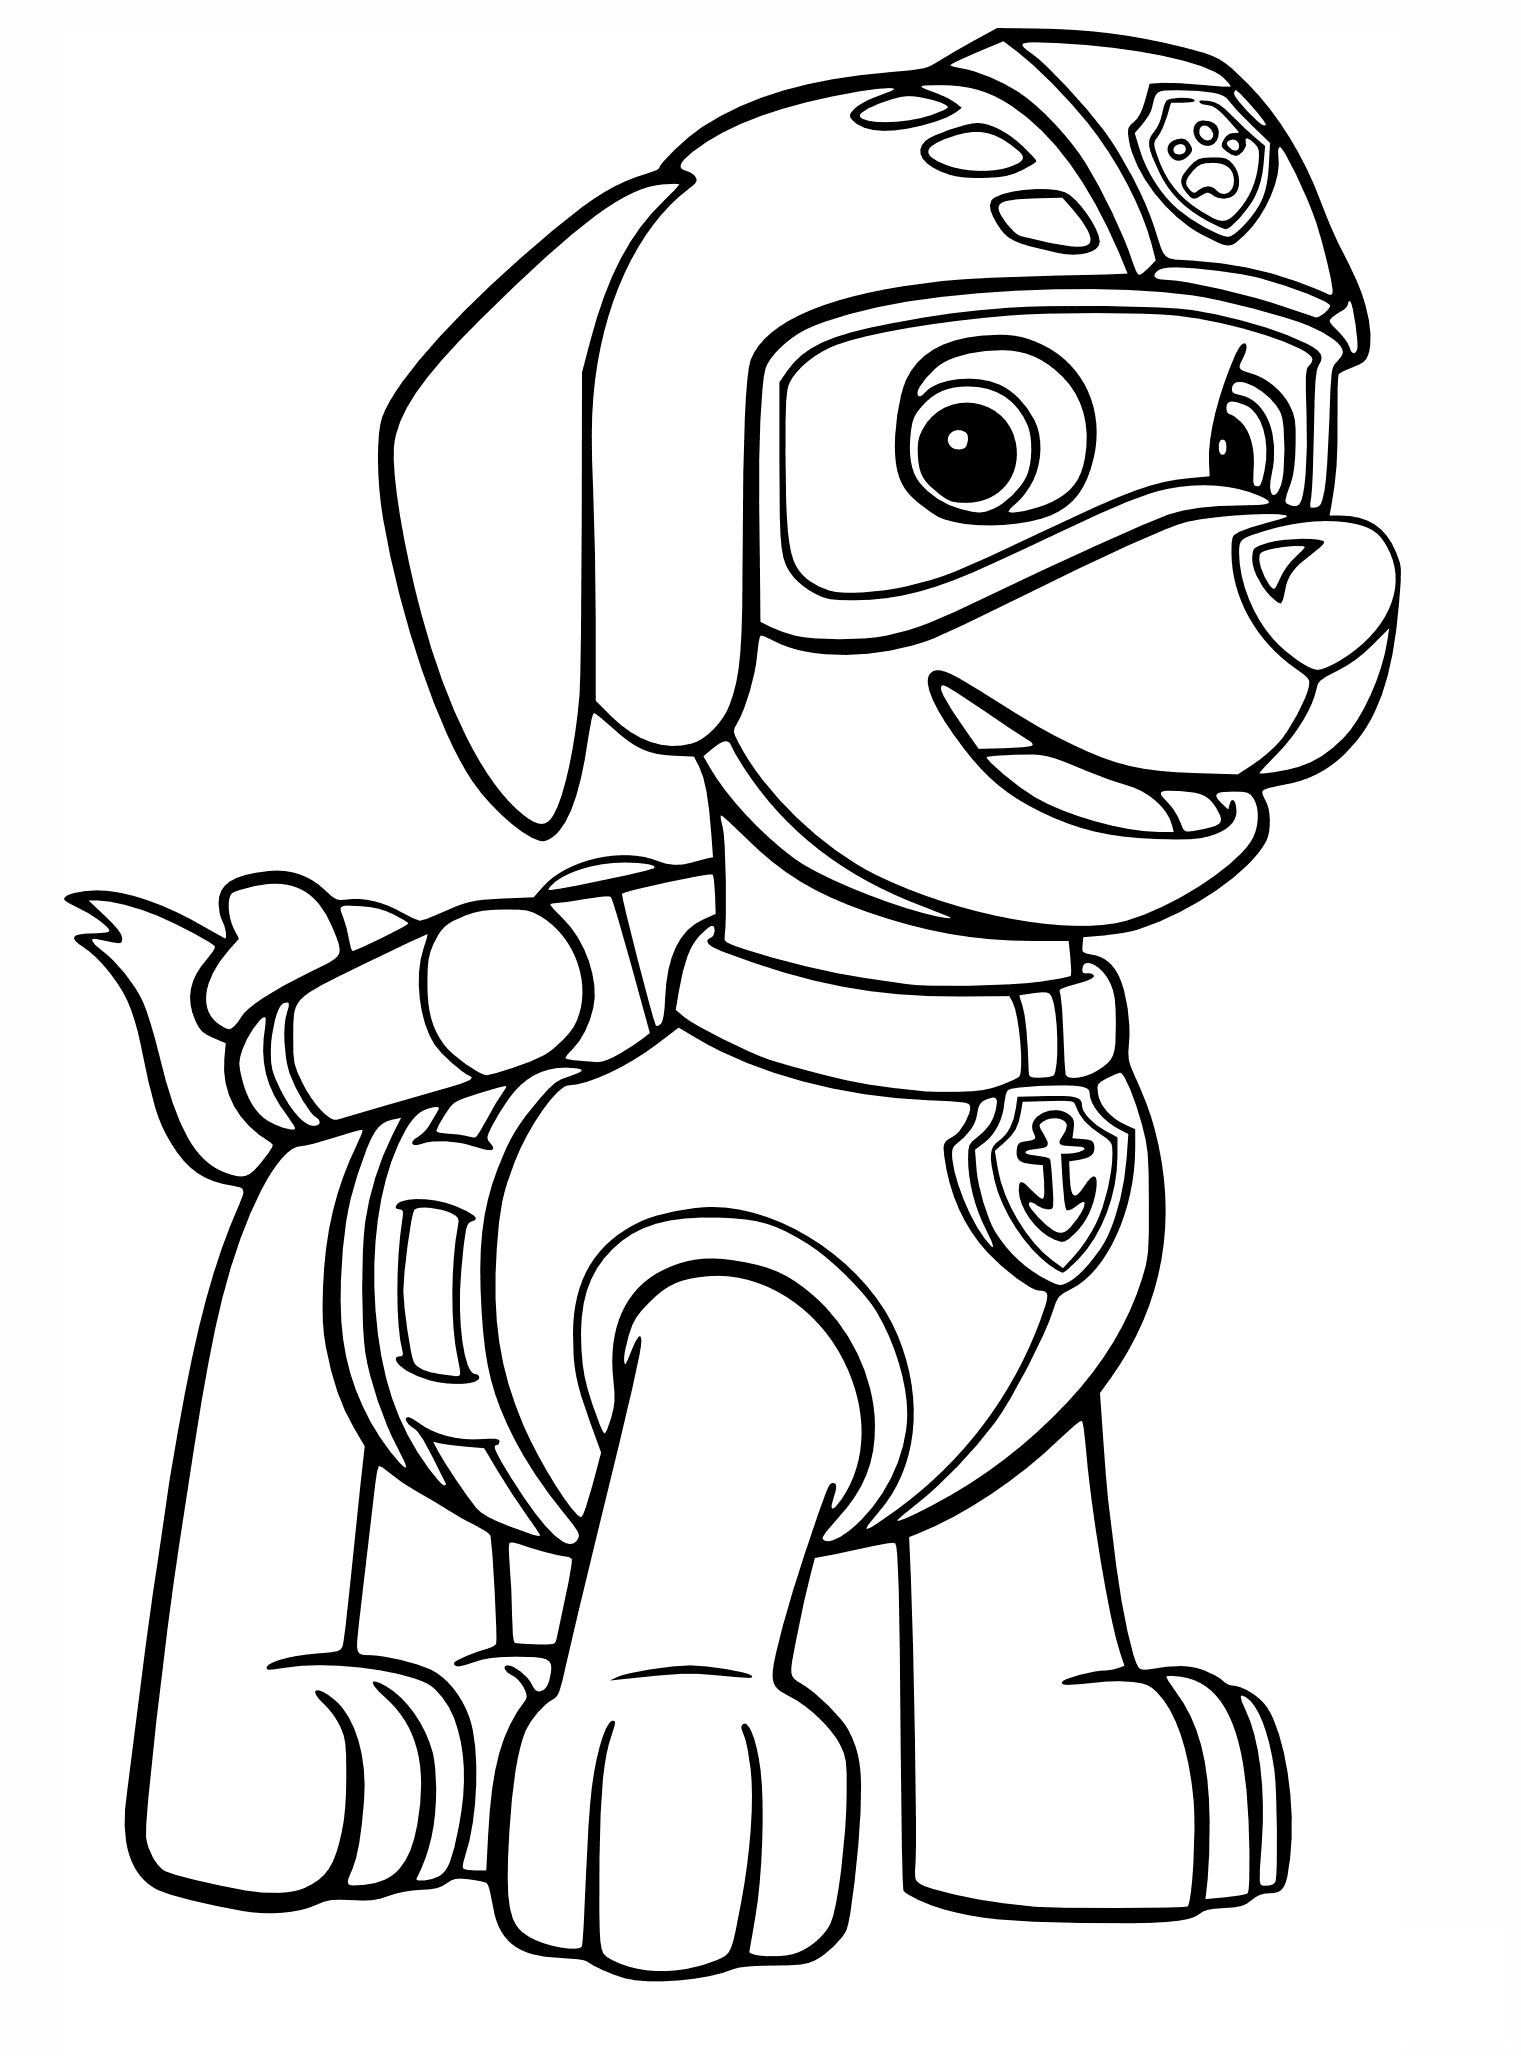 Zumas air rescue uniform coloring page | Coloring For Kids | Pinterest